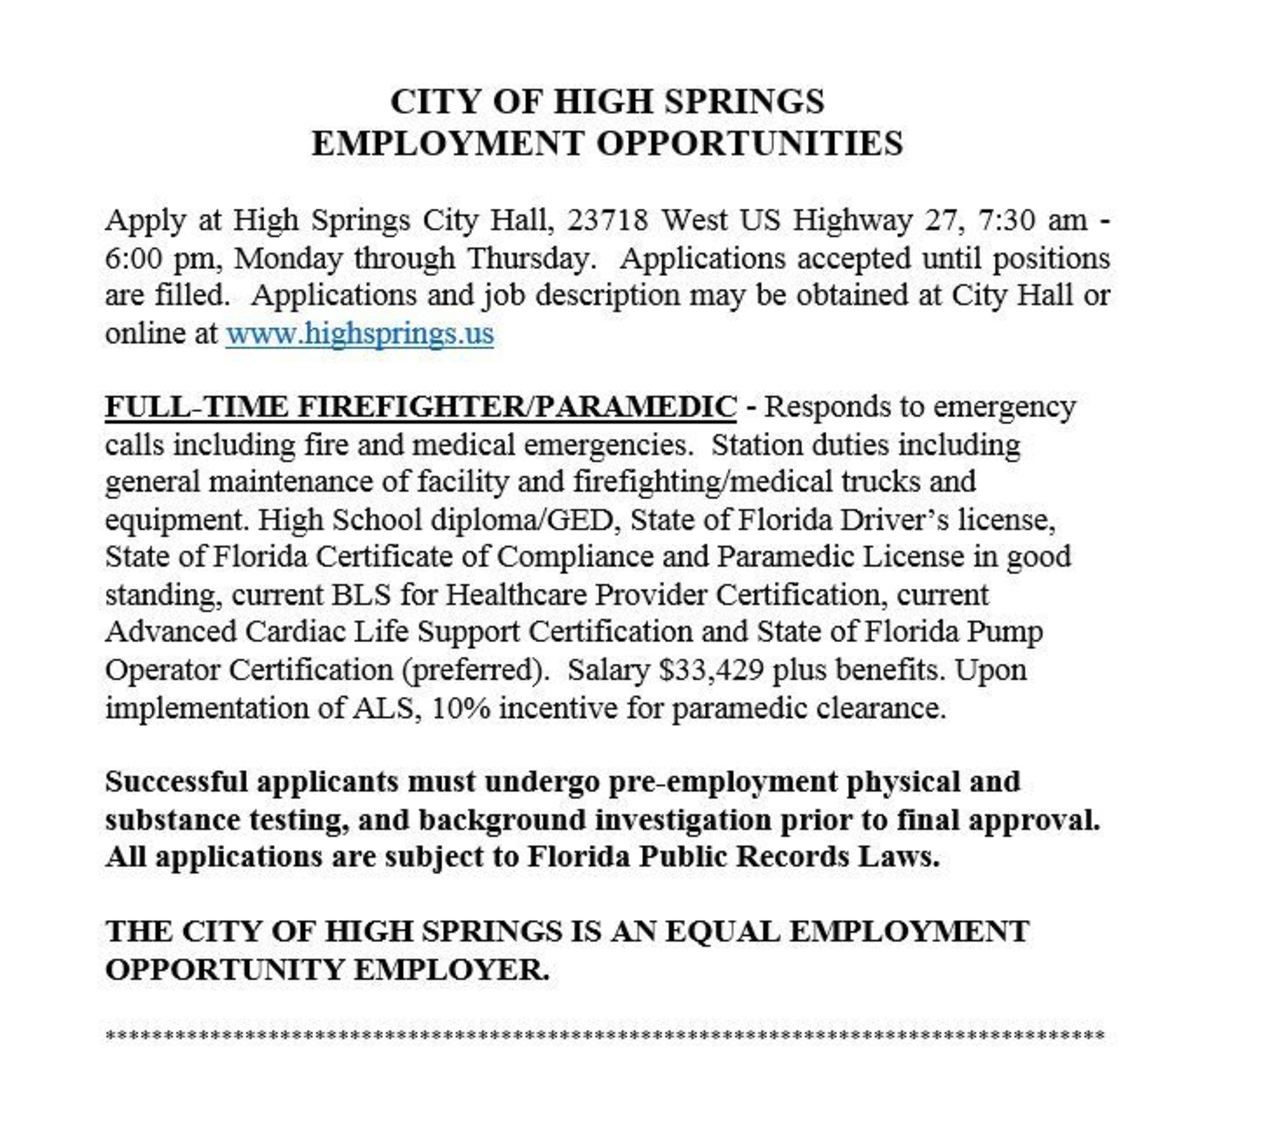 City of High Springs Hiring FF/Paramedic